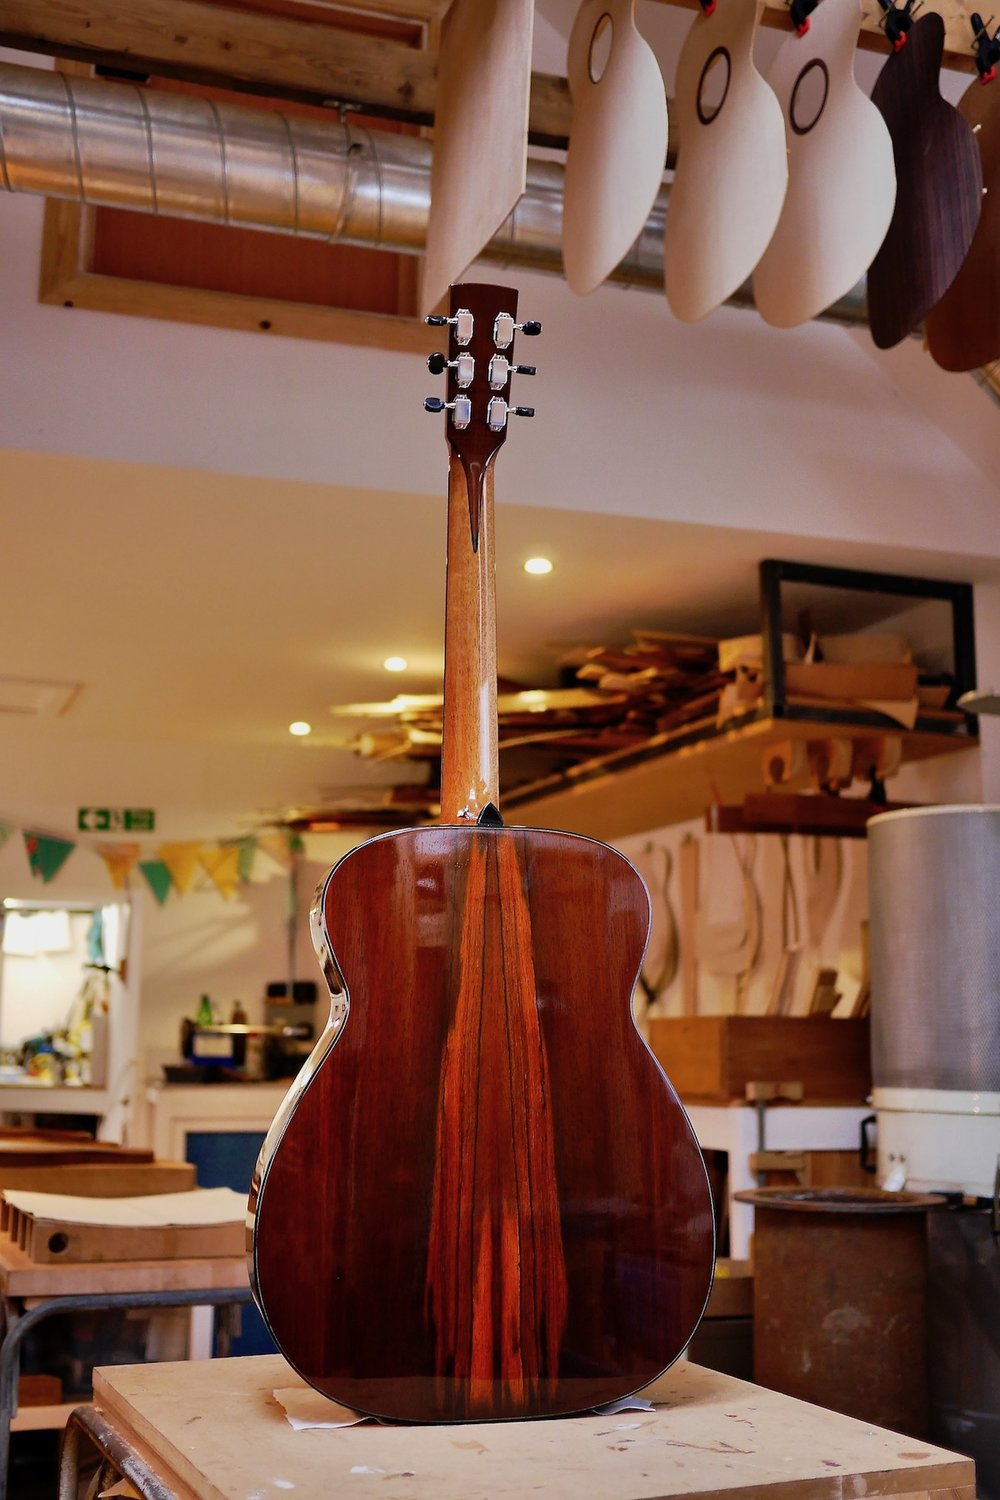 14th fret Ulladale in Belizean Rosewood and Adirondack